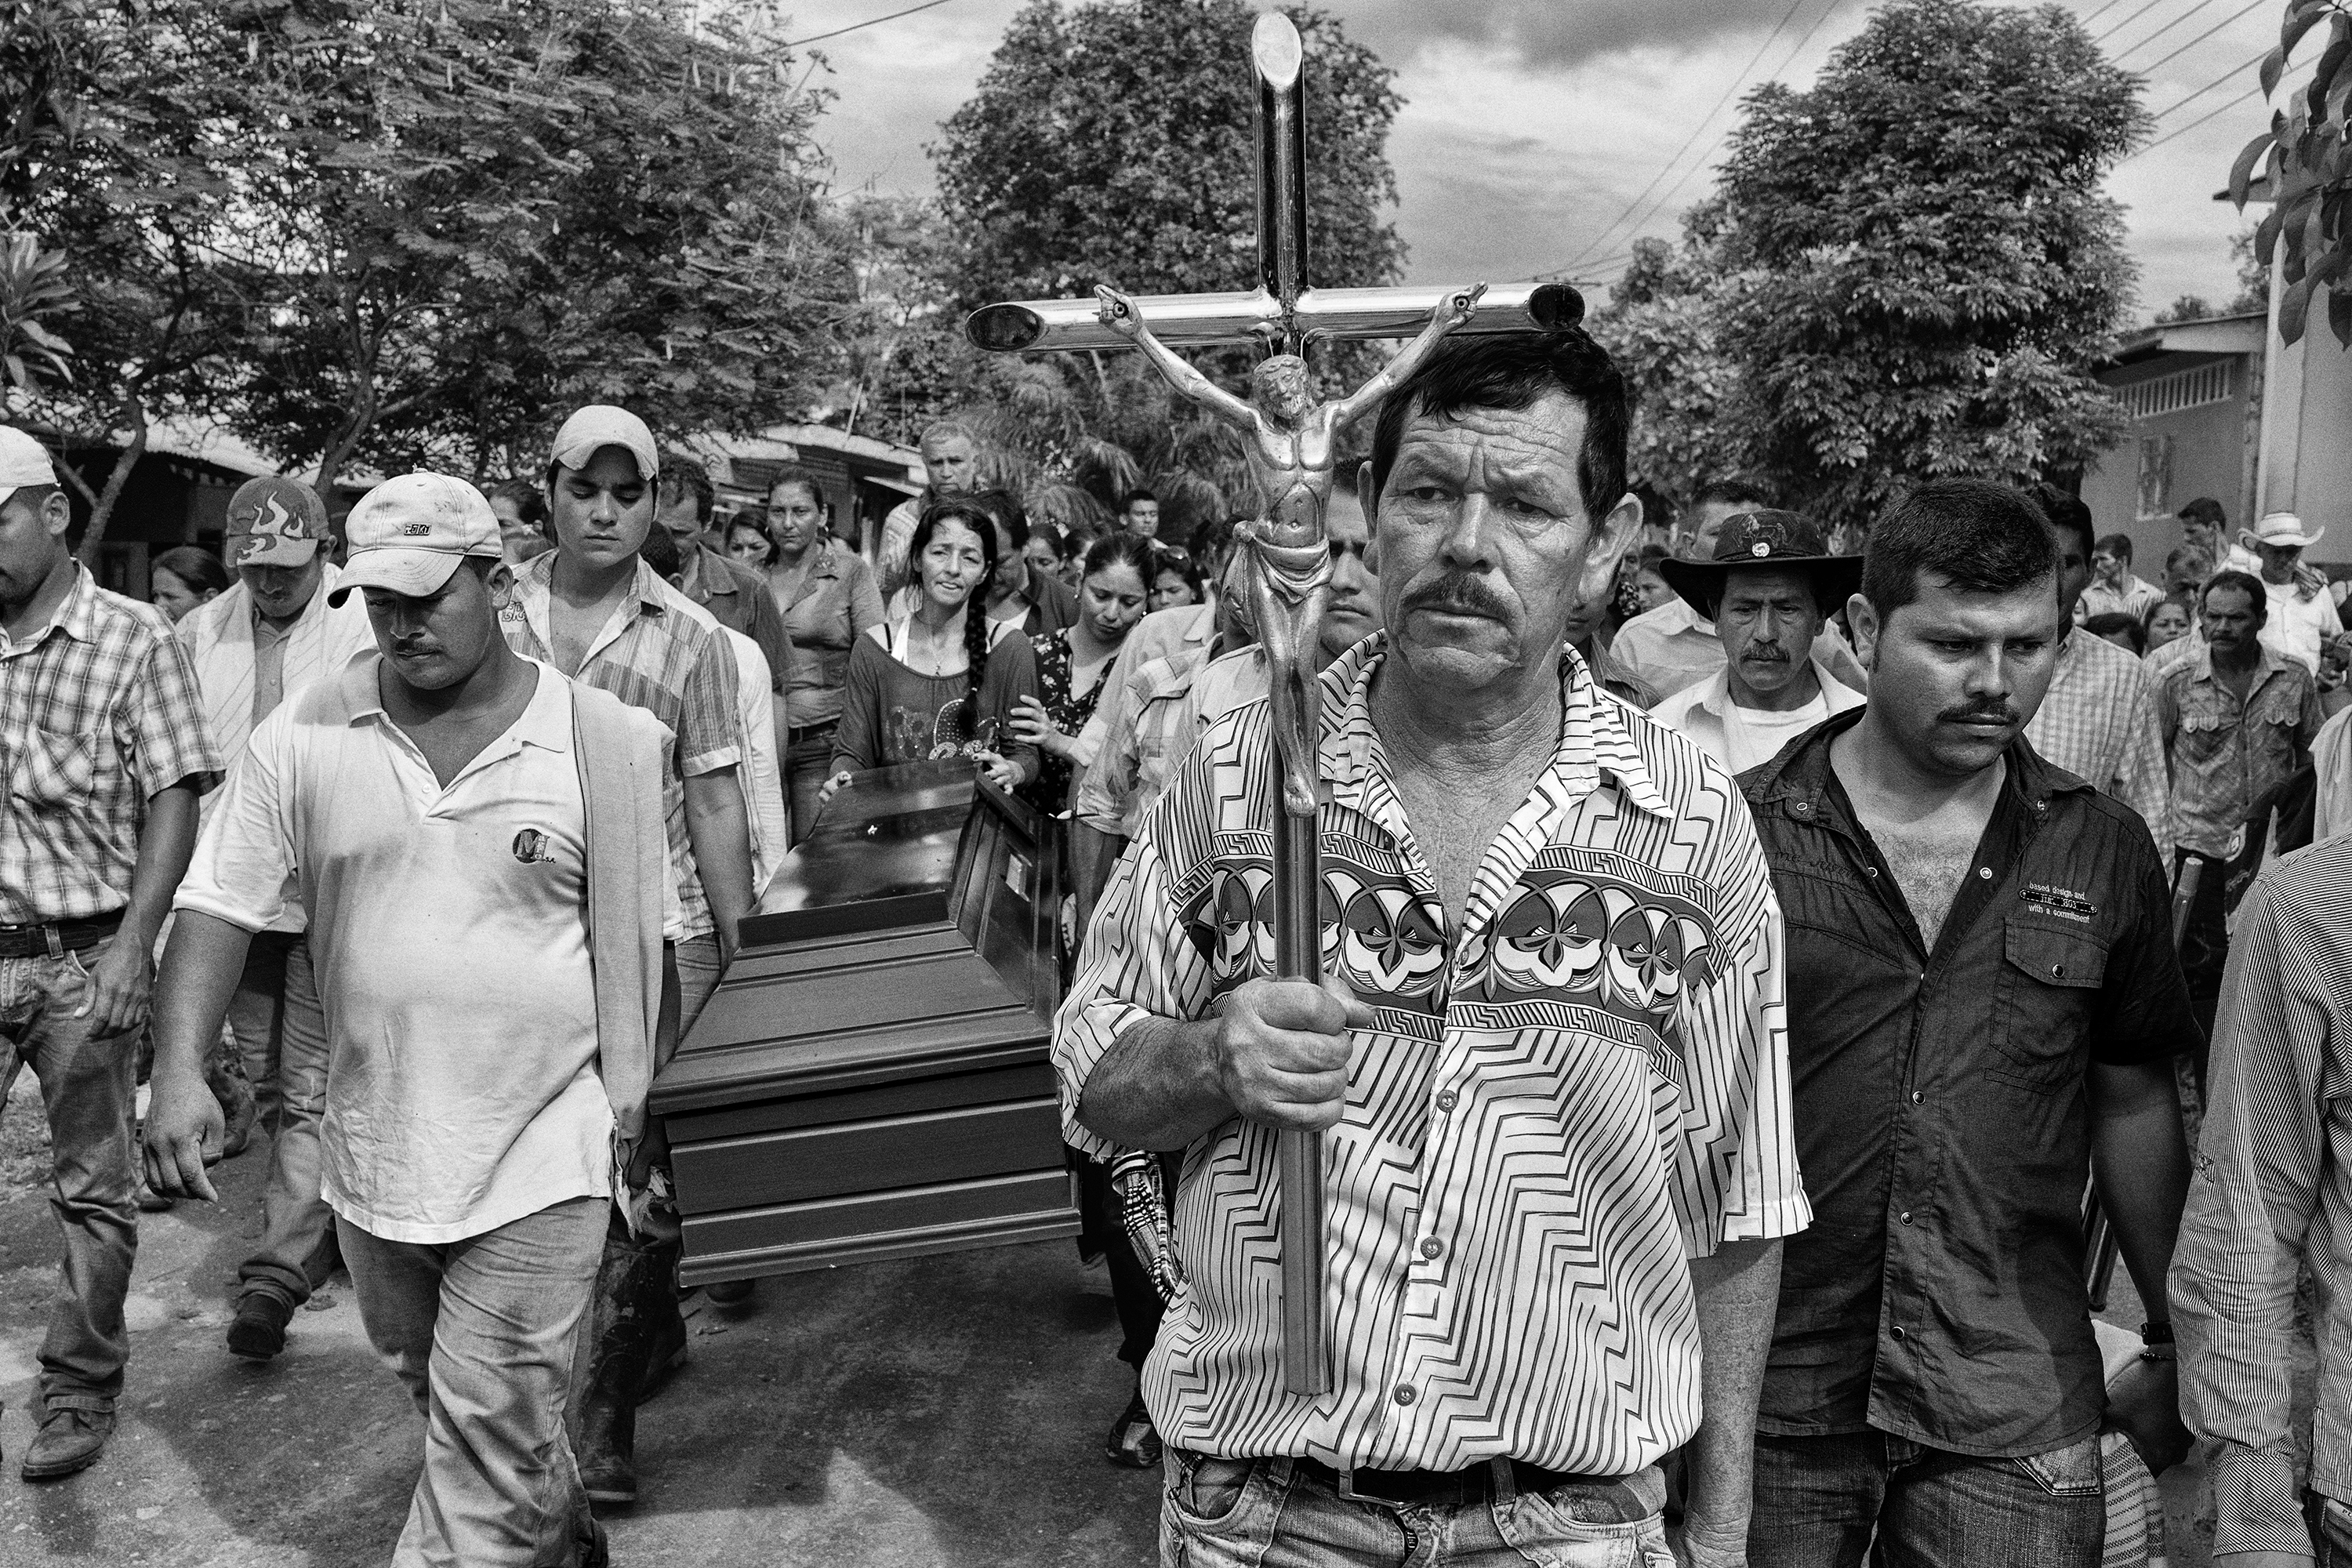 Relatives and friends carry the body of 18-year old Benjamin to the cemetery for burial, Nov. 2013, La Union Peneya, Caqueta, Colombia, Nov. 2013. Benjamin died at age 18 during a fight with the FARC guerrillas.